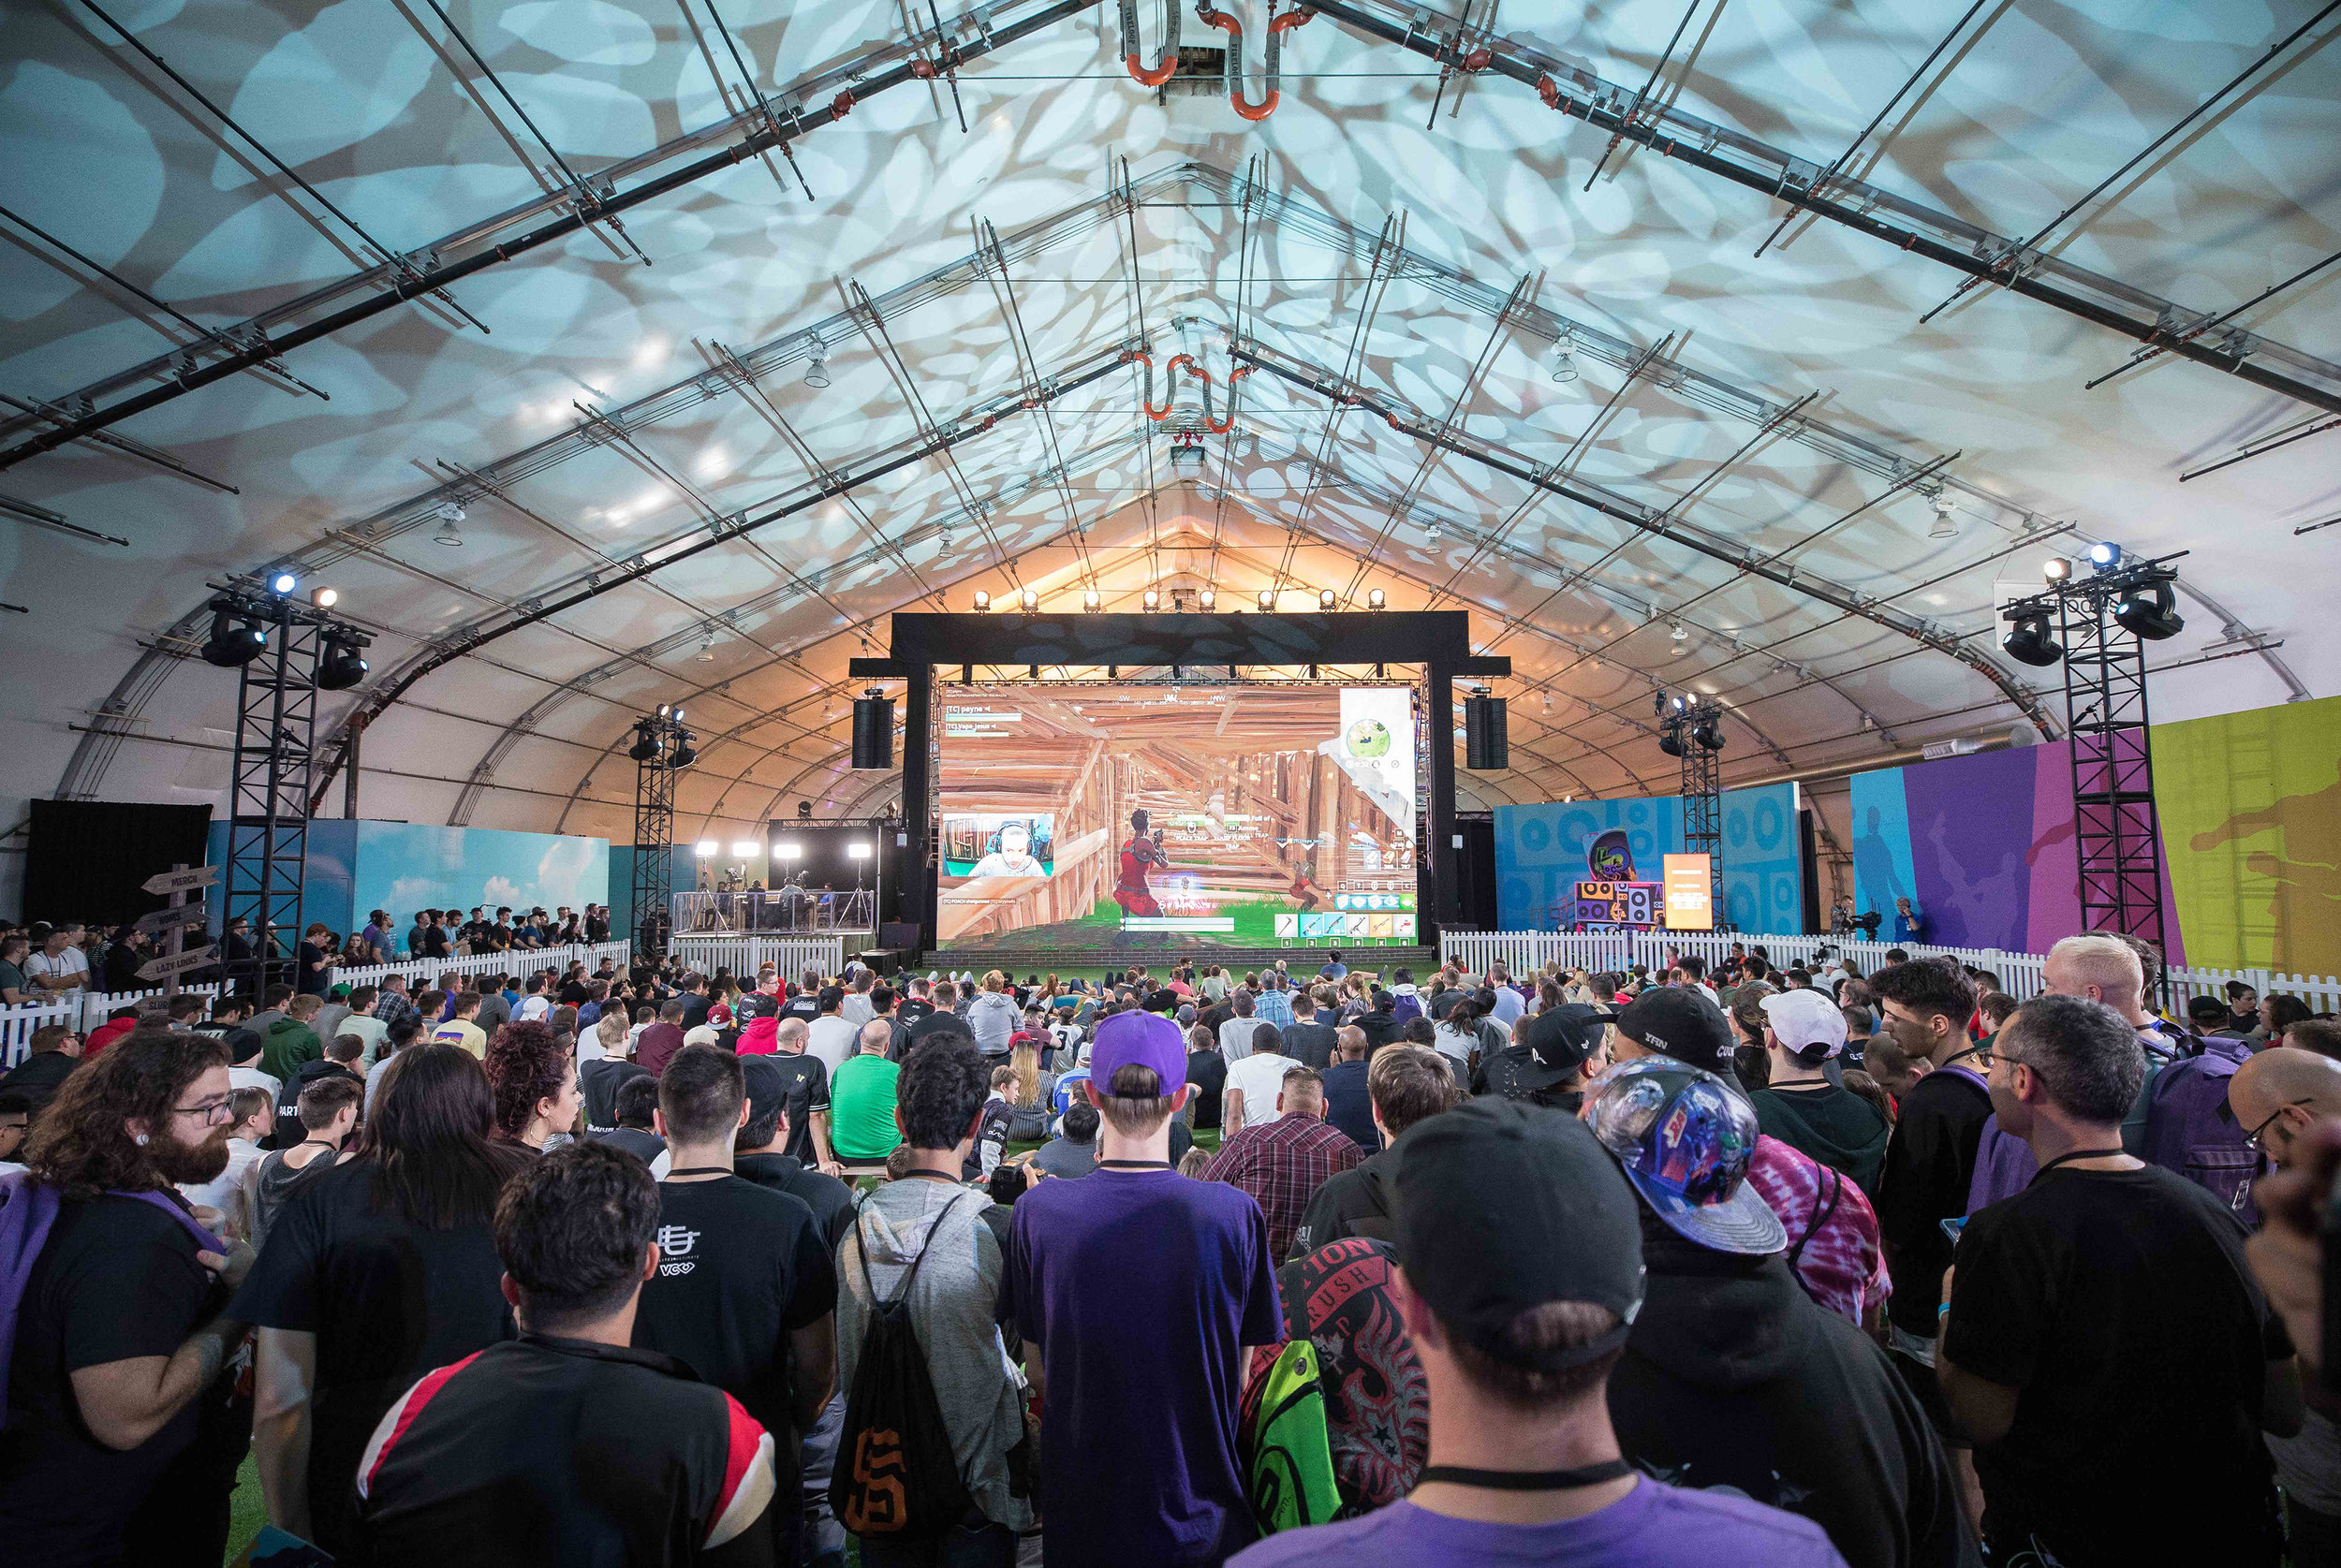 Crowd of fans watching Fortnite competition at TwitchCon, San Jose Convention Center on October 26, 2018 in San Jose, California.  Photo by Hannah Smith / ESPAT Media